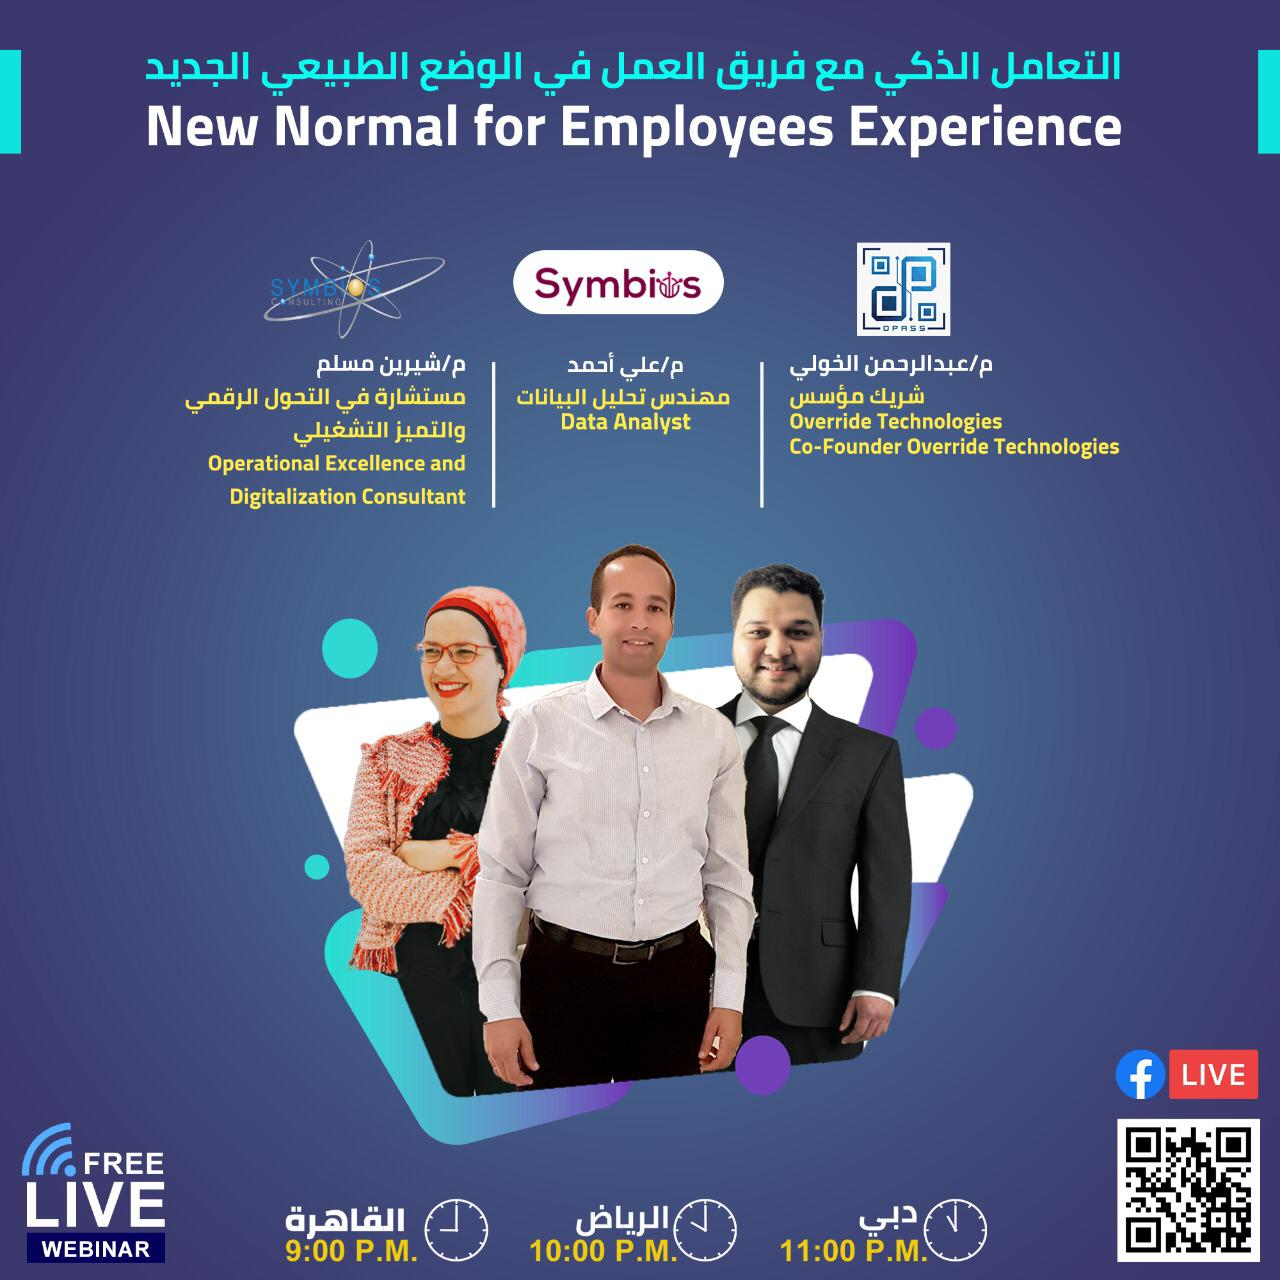 New Normal for Employees Experience